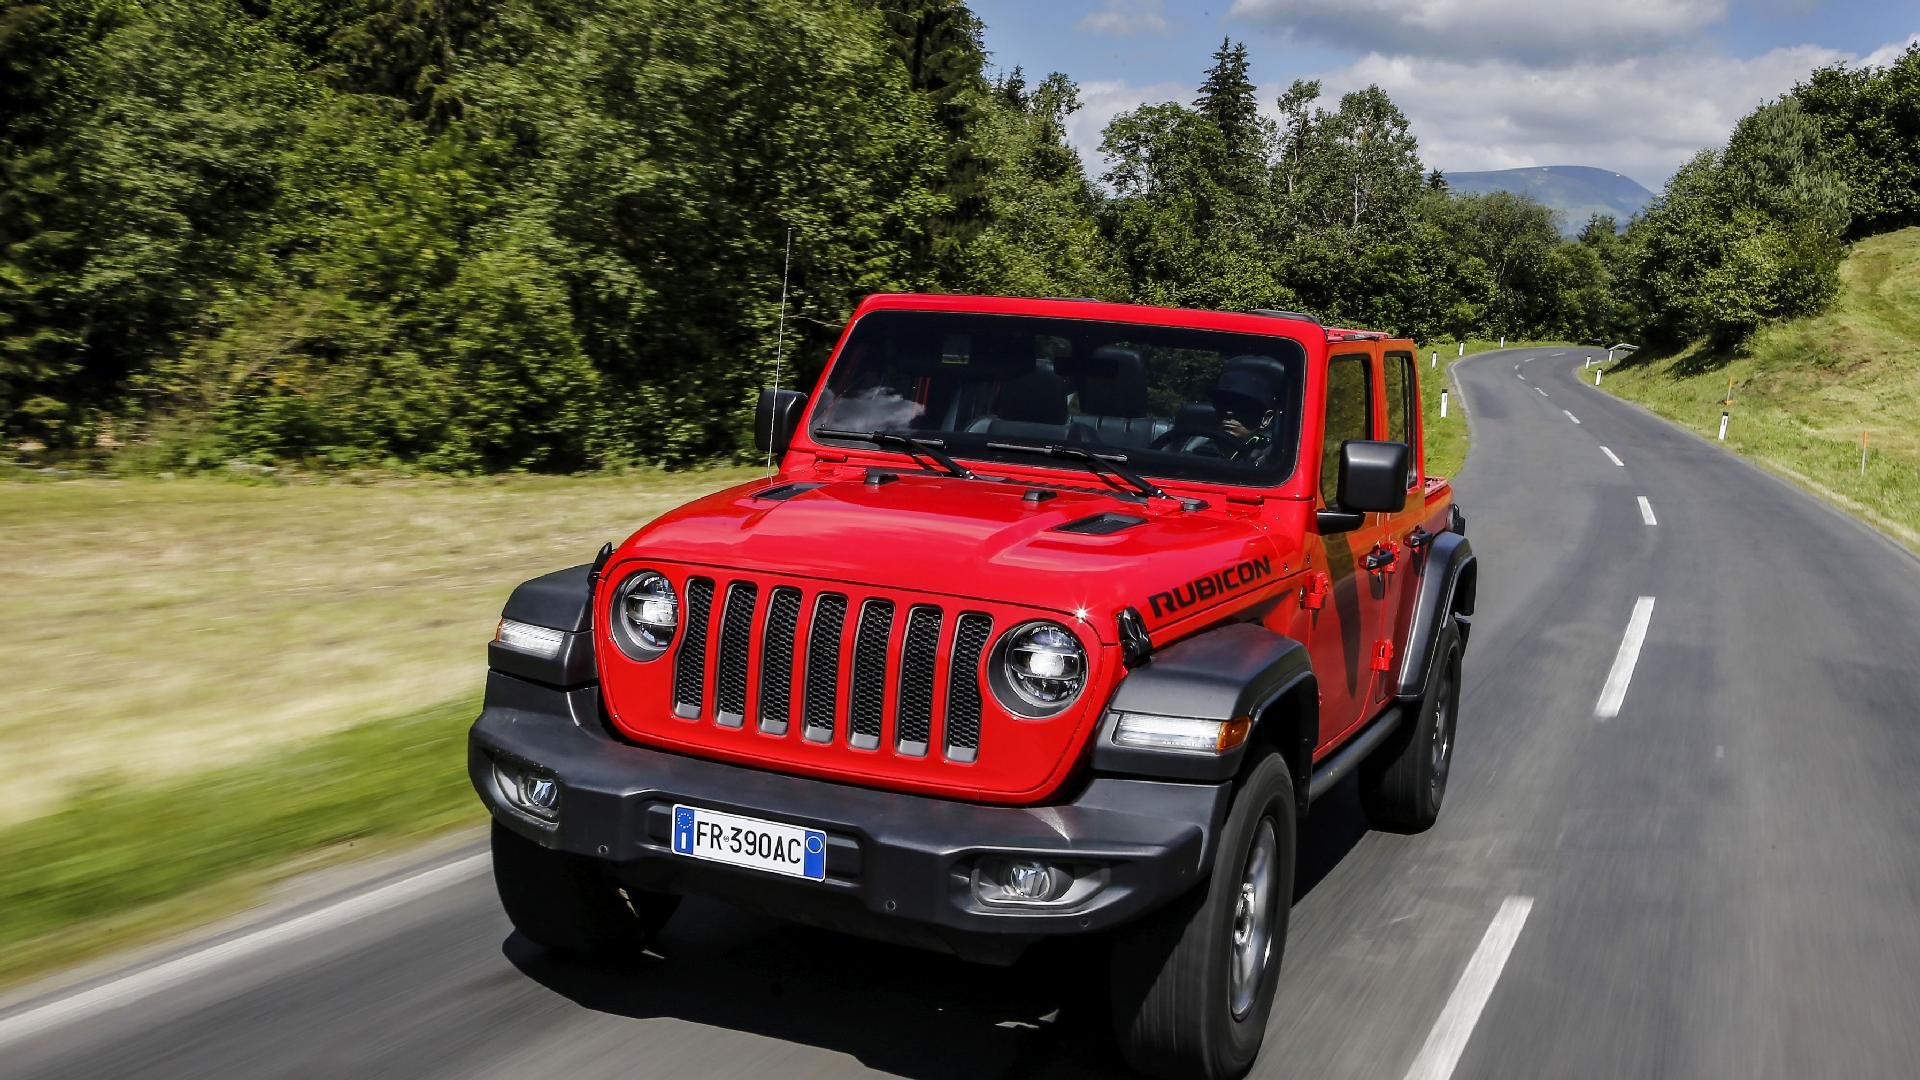 JEEP Wrangler Unlimited GME 2.0 Turbo Freedom aut